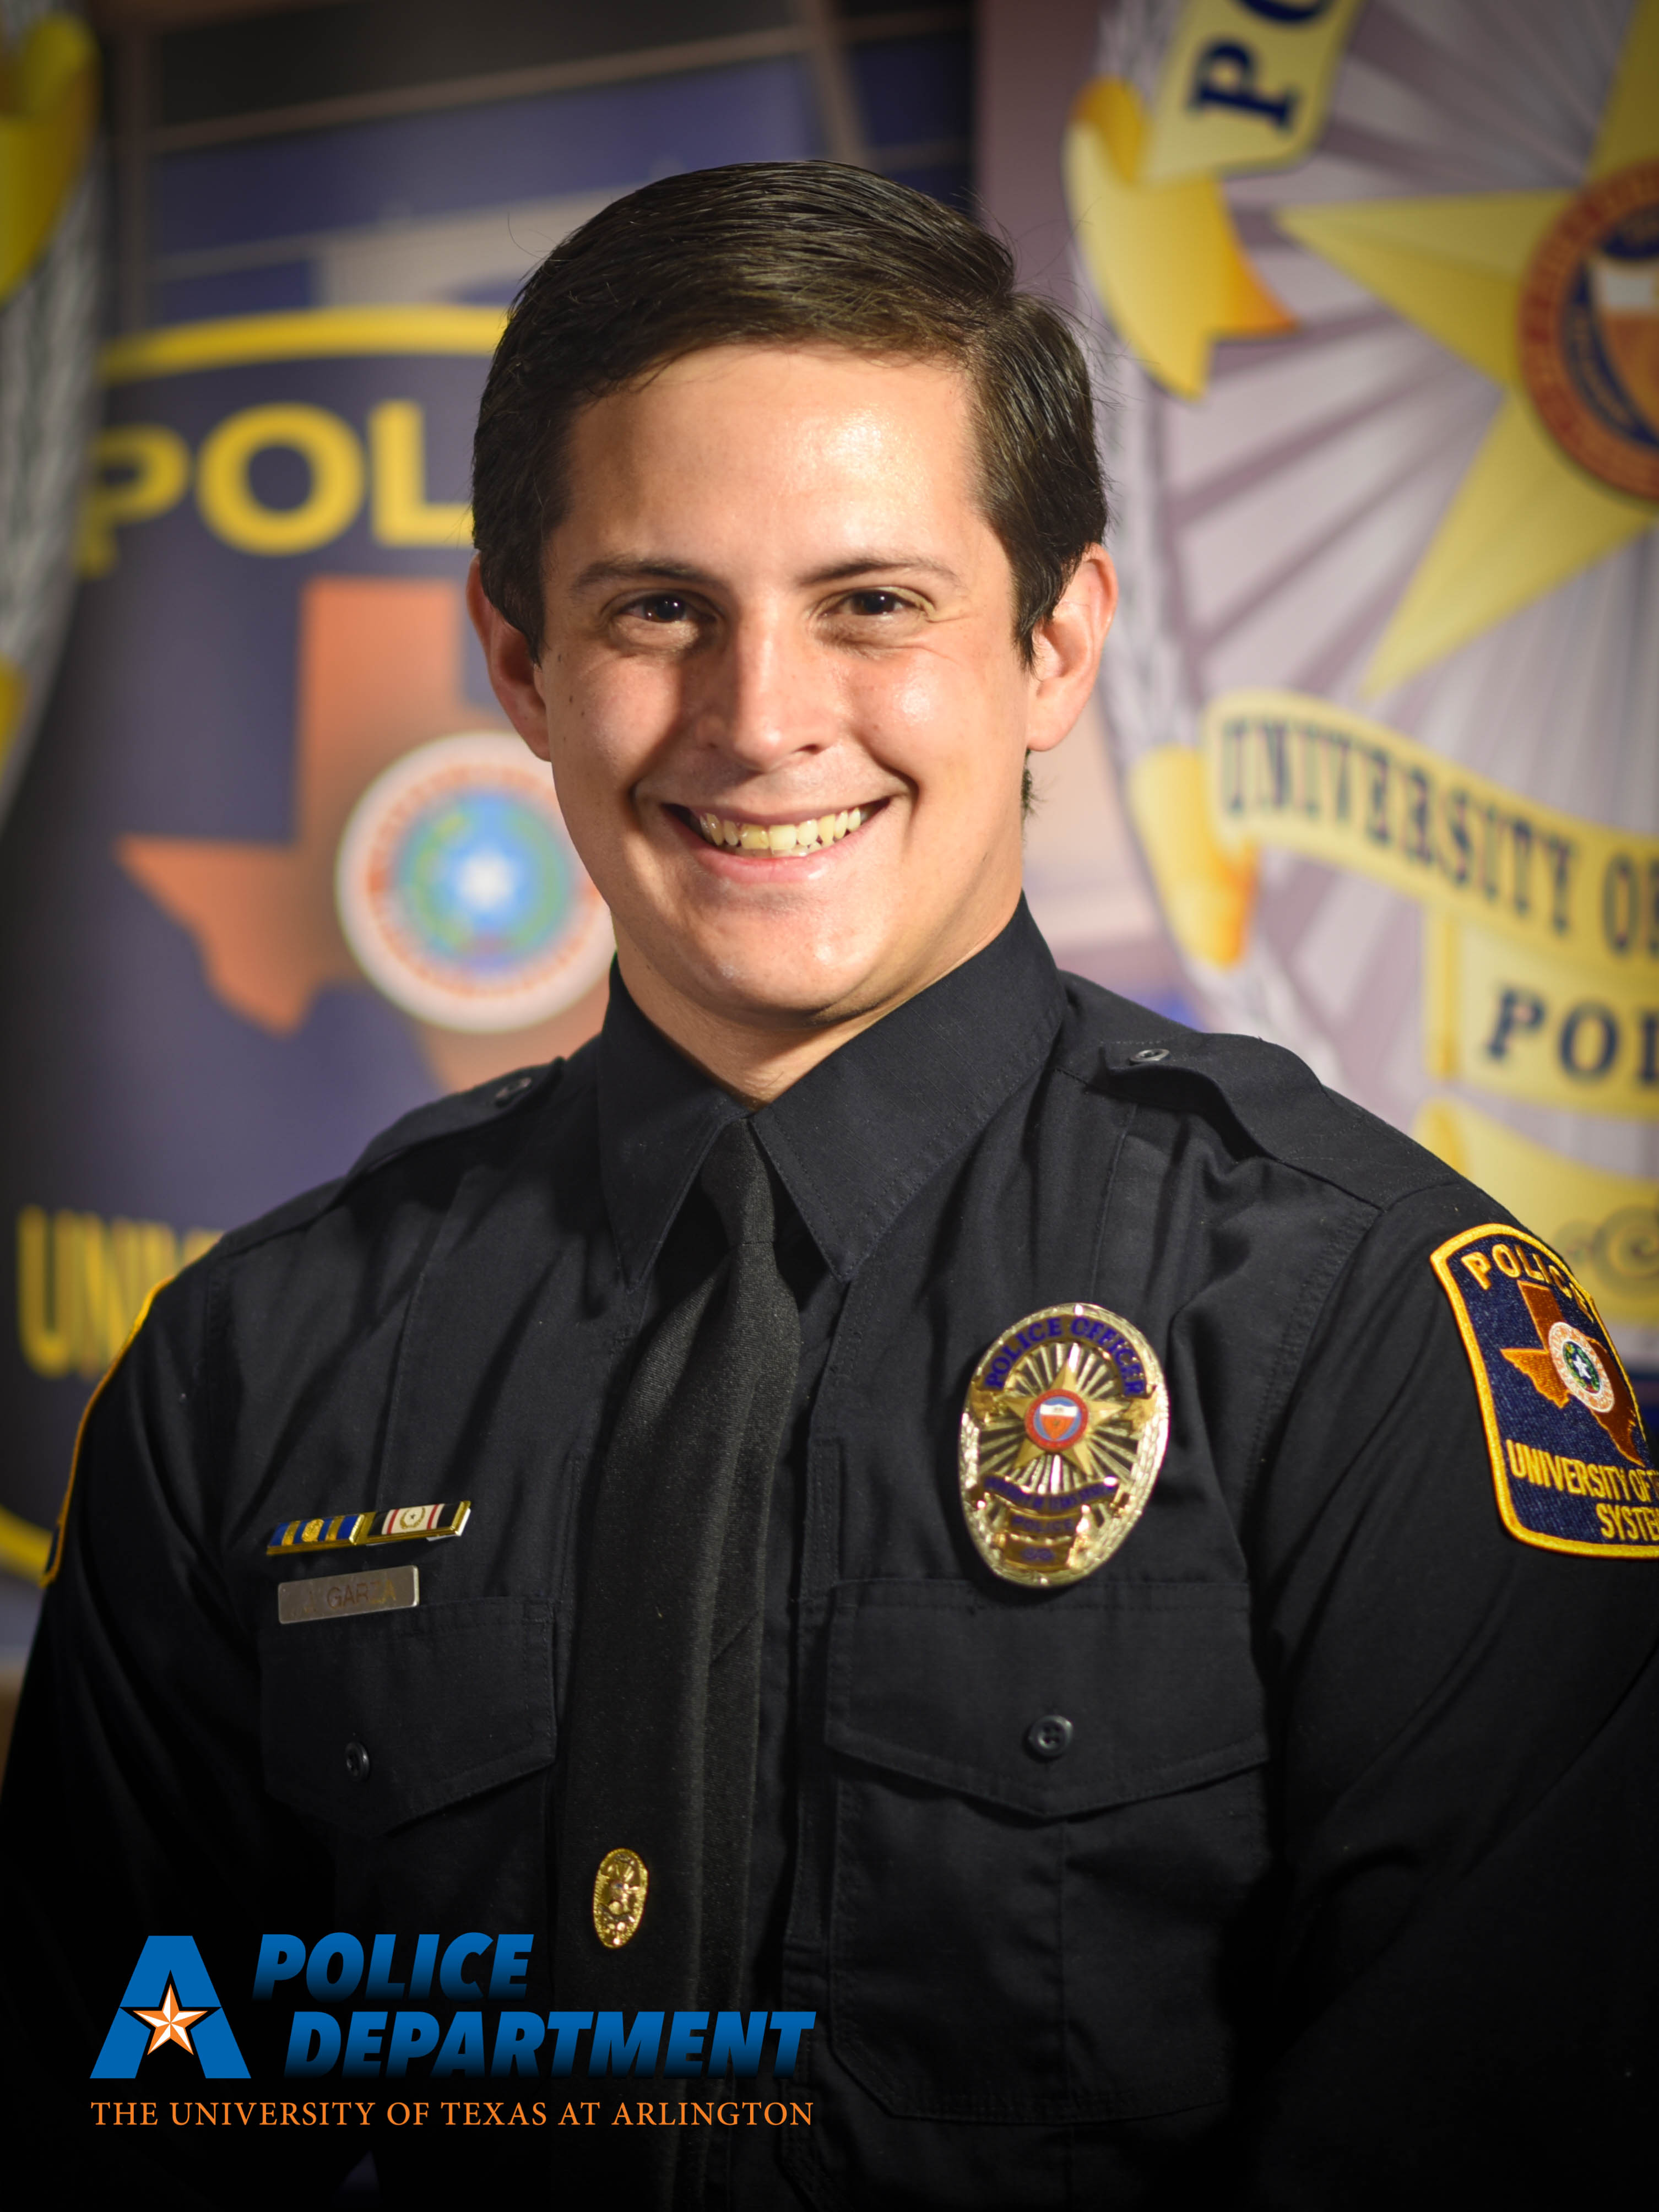 Officer Garza Picture